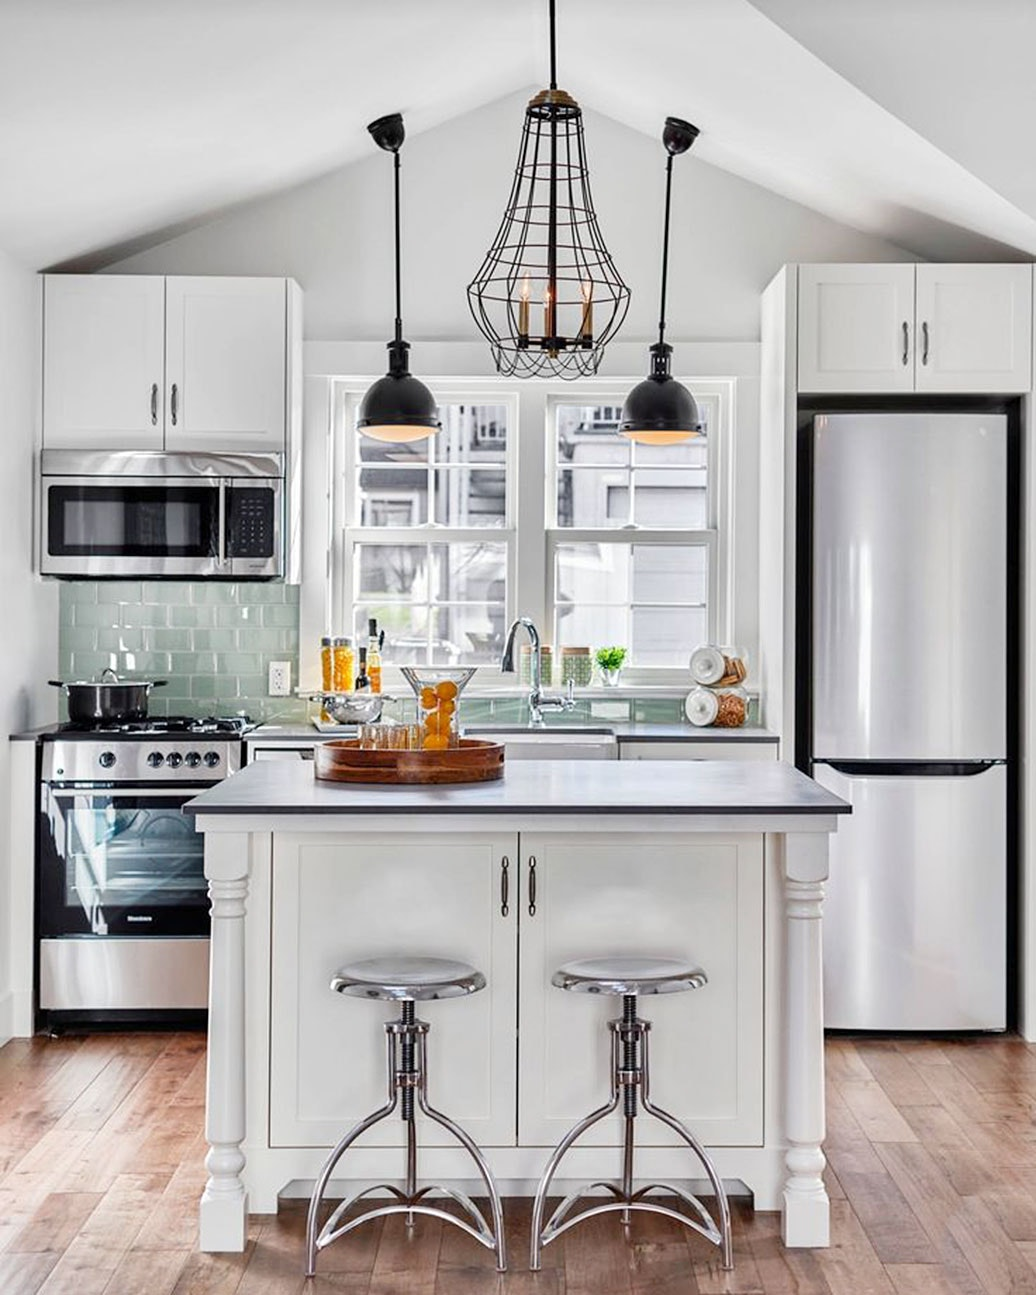 3 Must Have Kitchen Appliances You Should Consider When